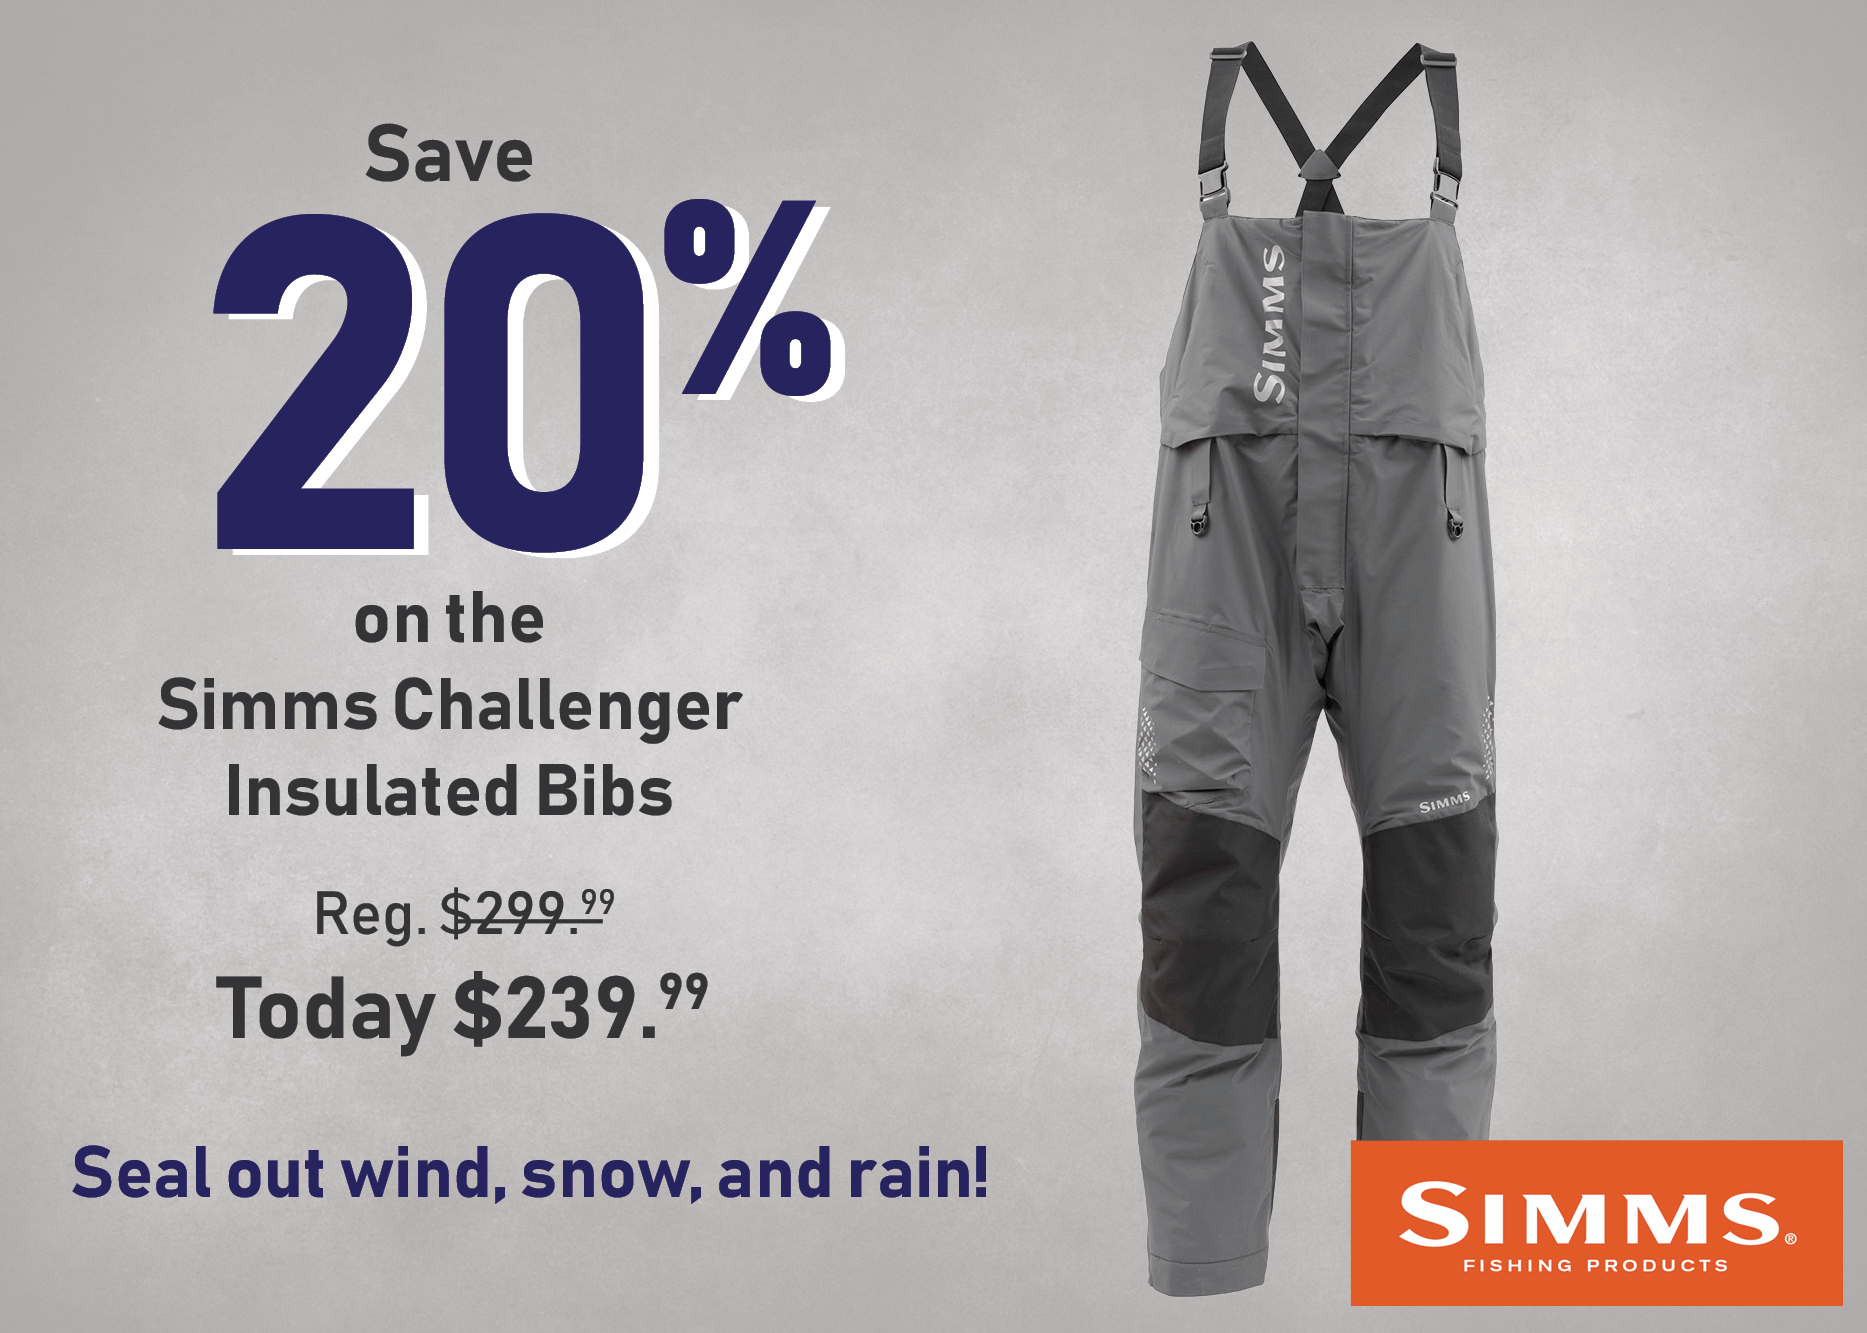 Save 20% on the Simms Challenger Insulated Bibs